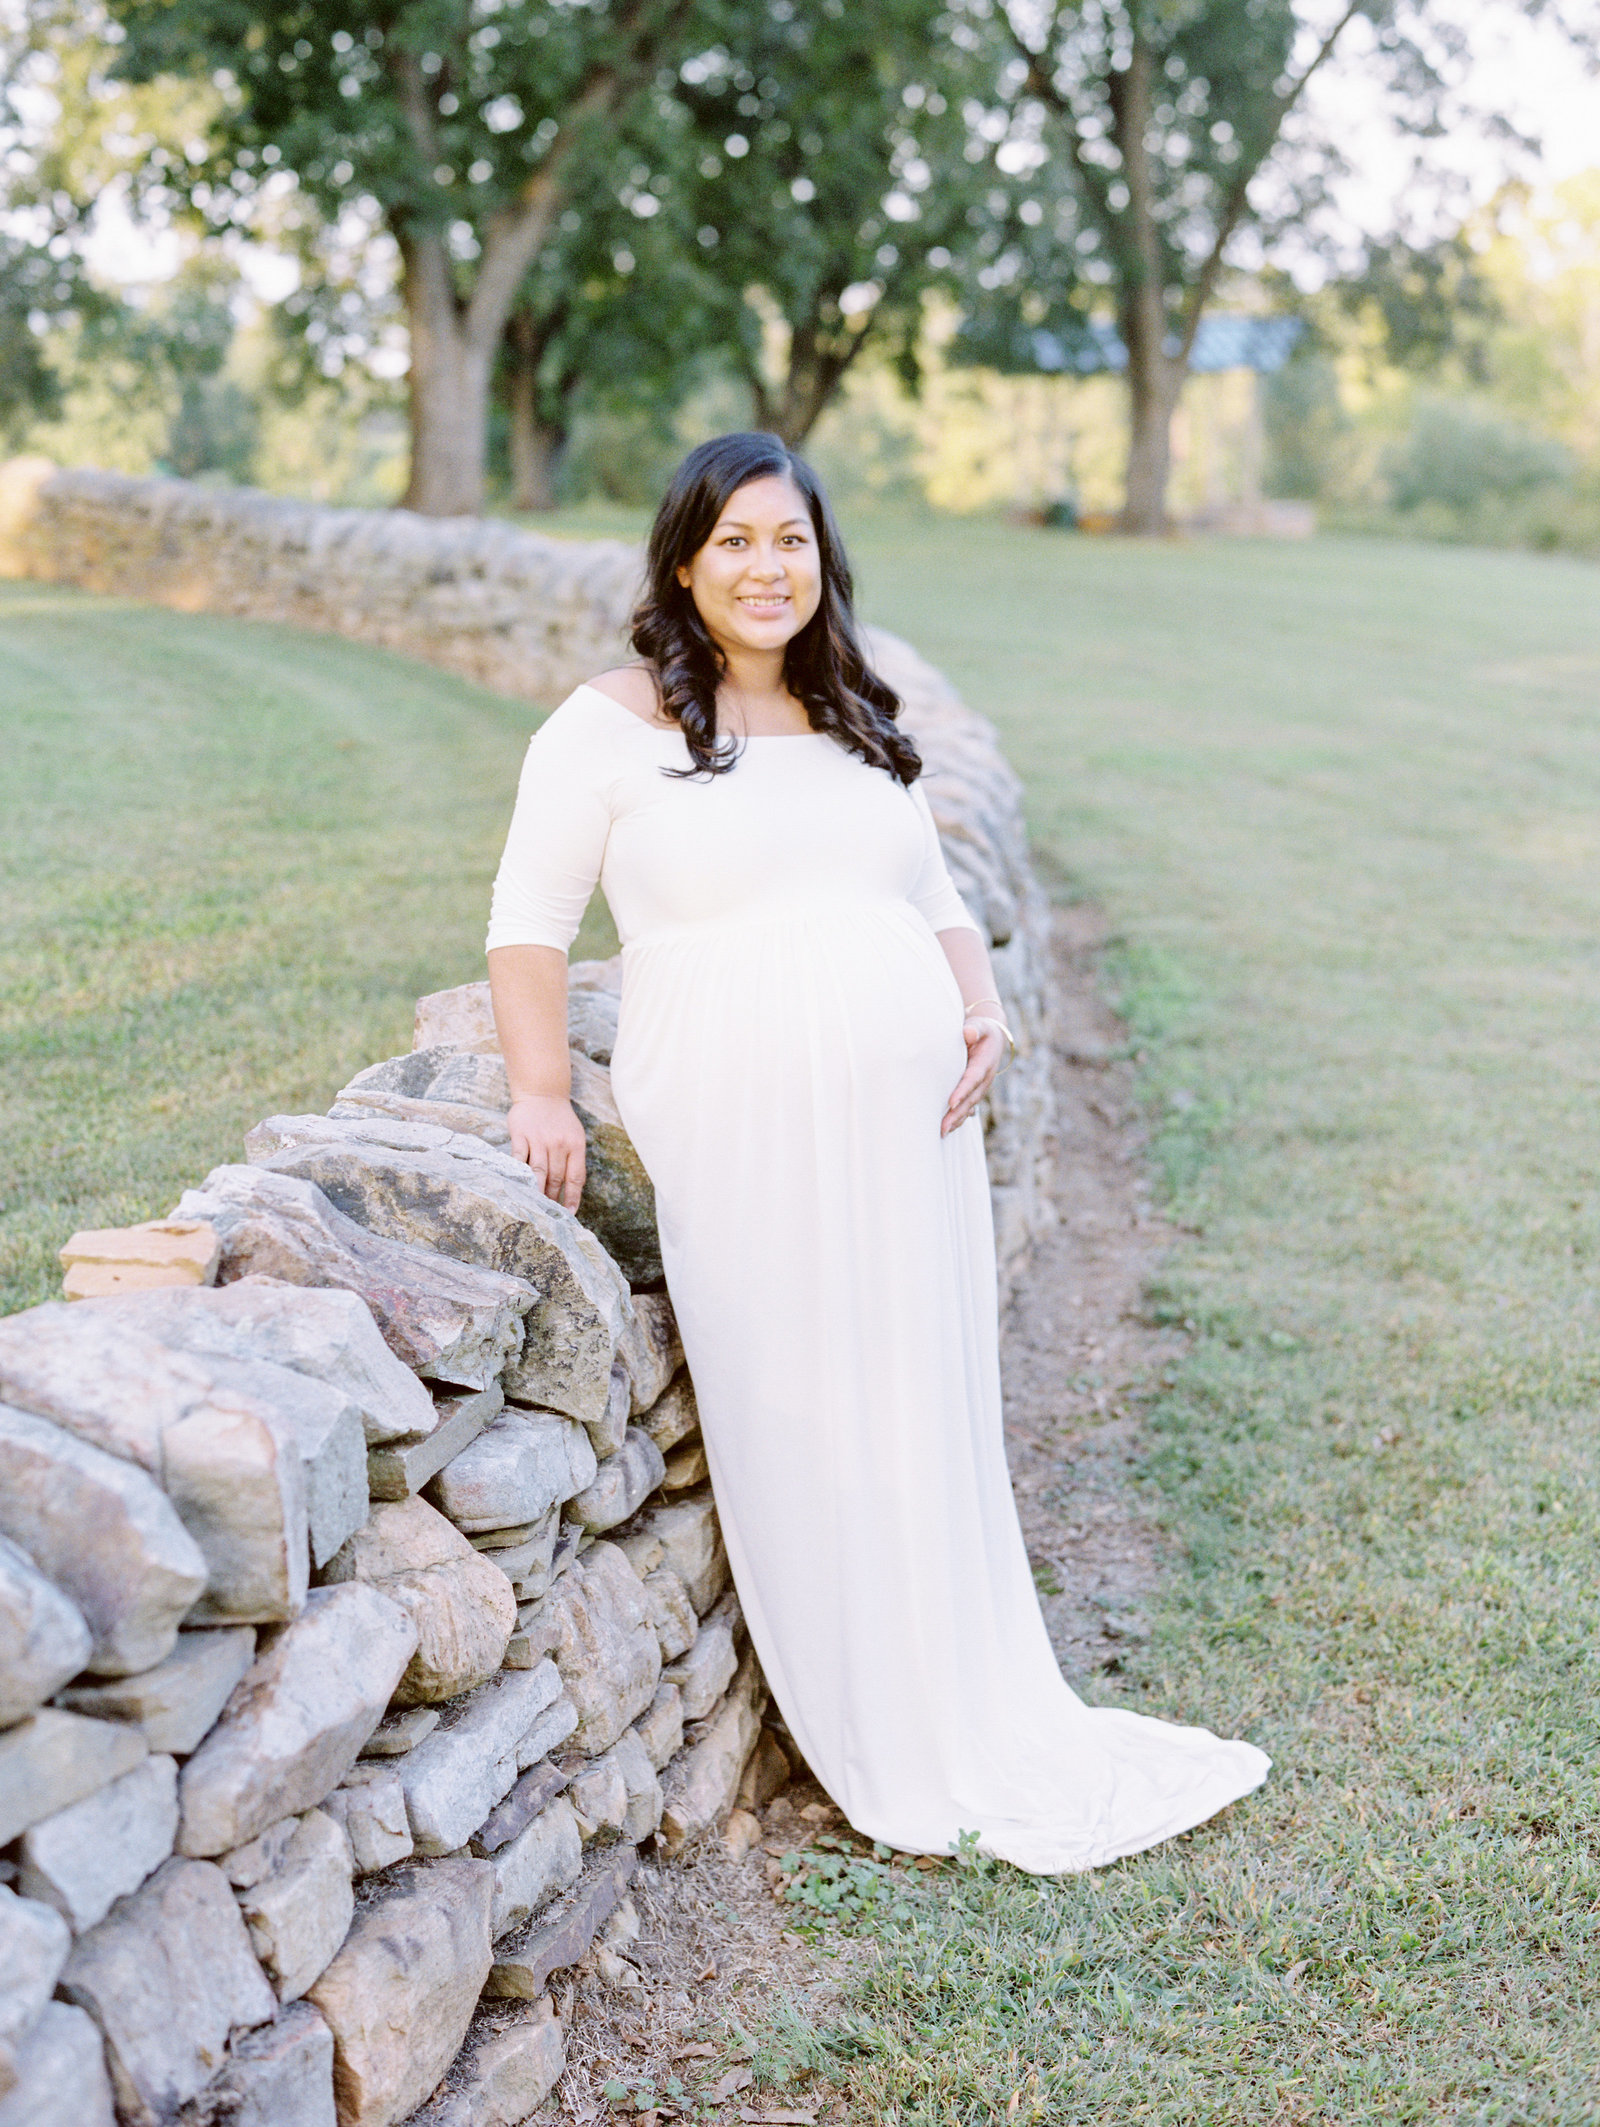 raleigh_nc_maternity_photographer_film_casey_rose_photography_001